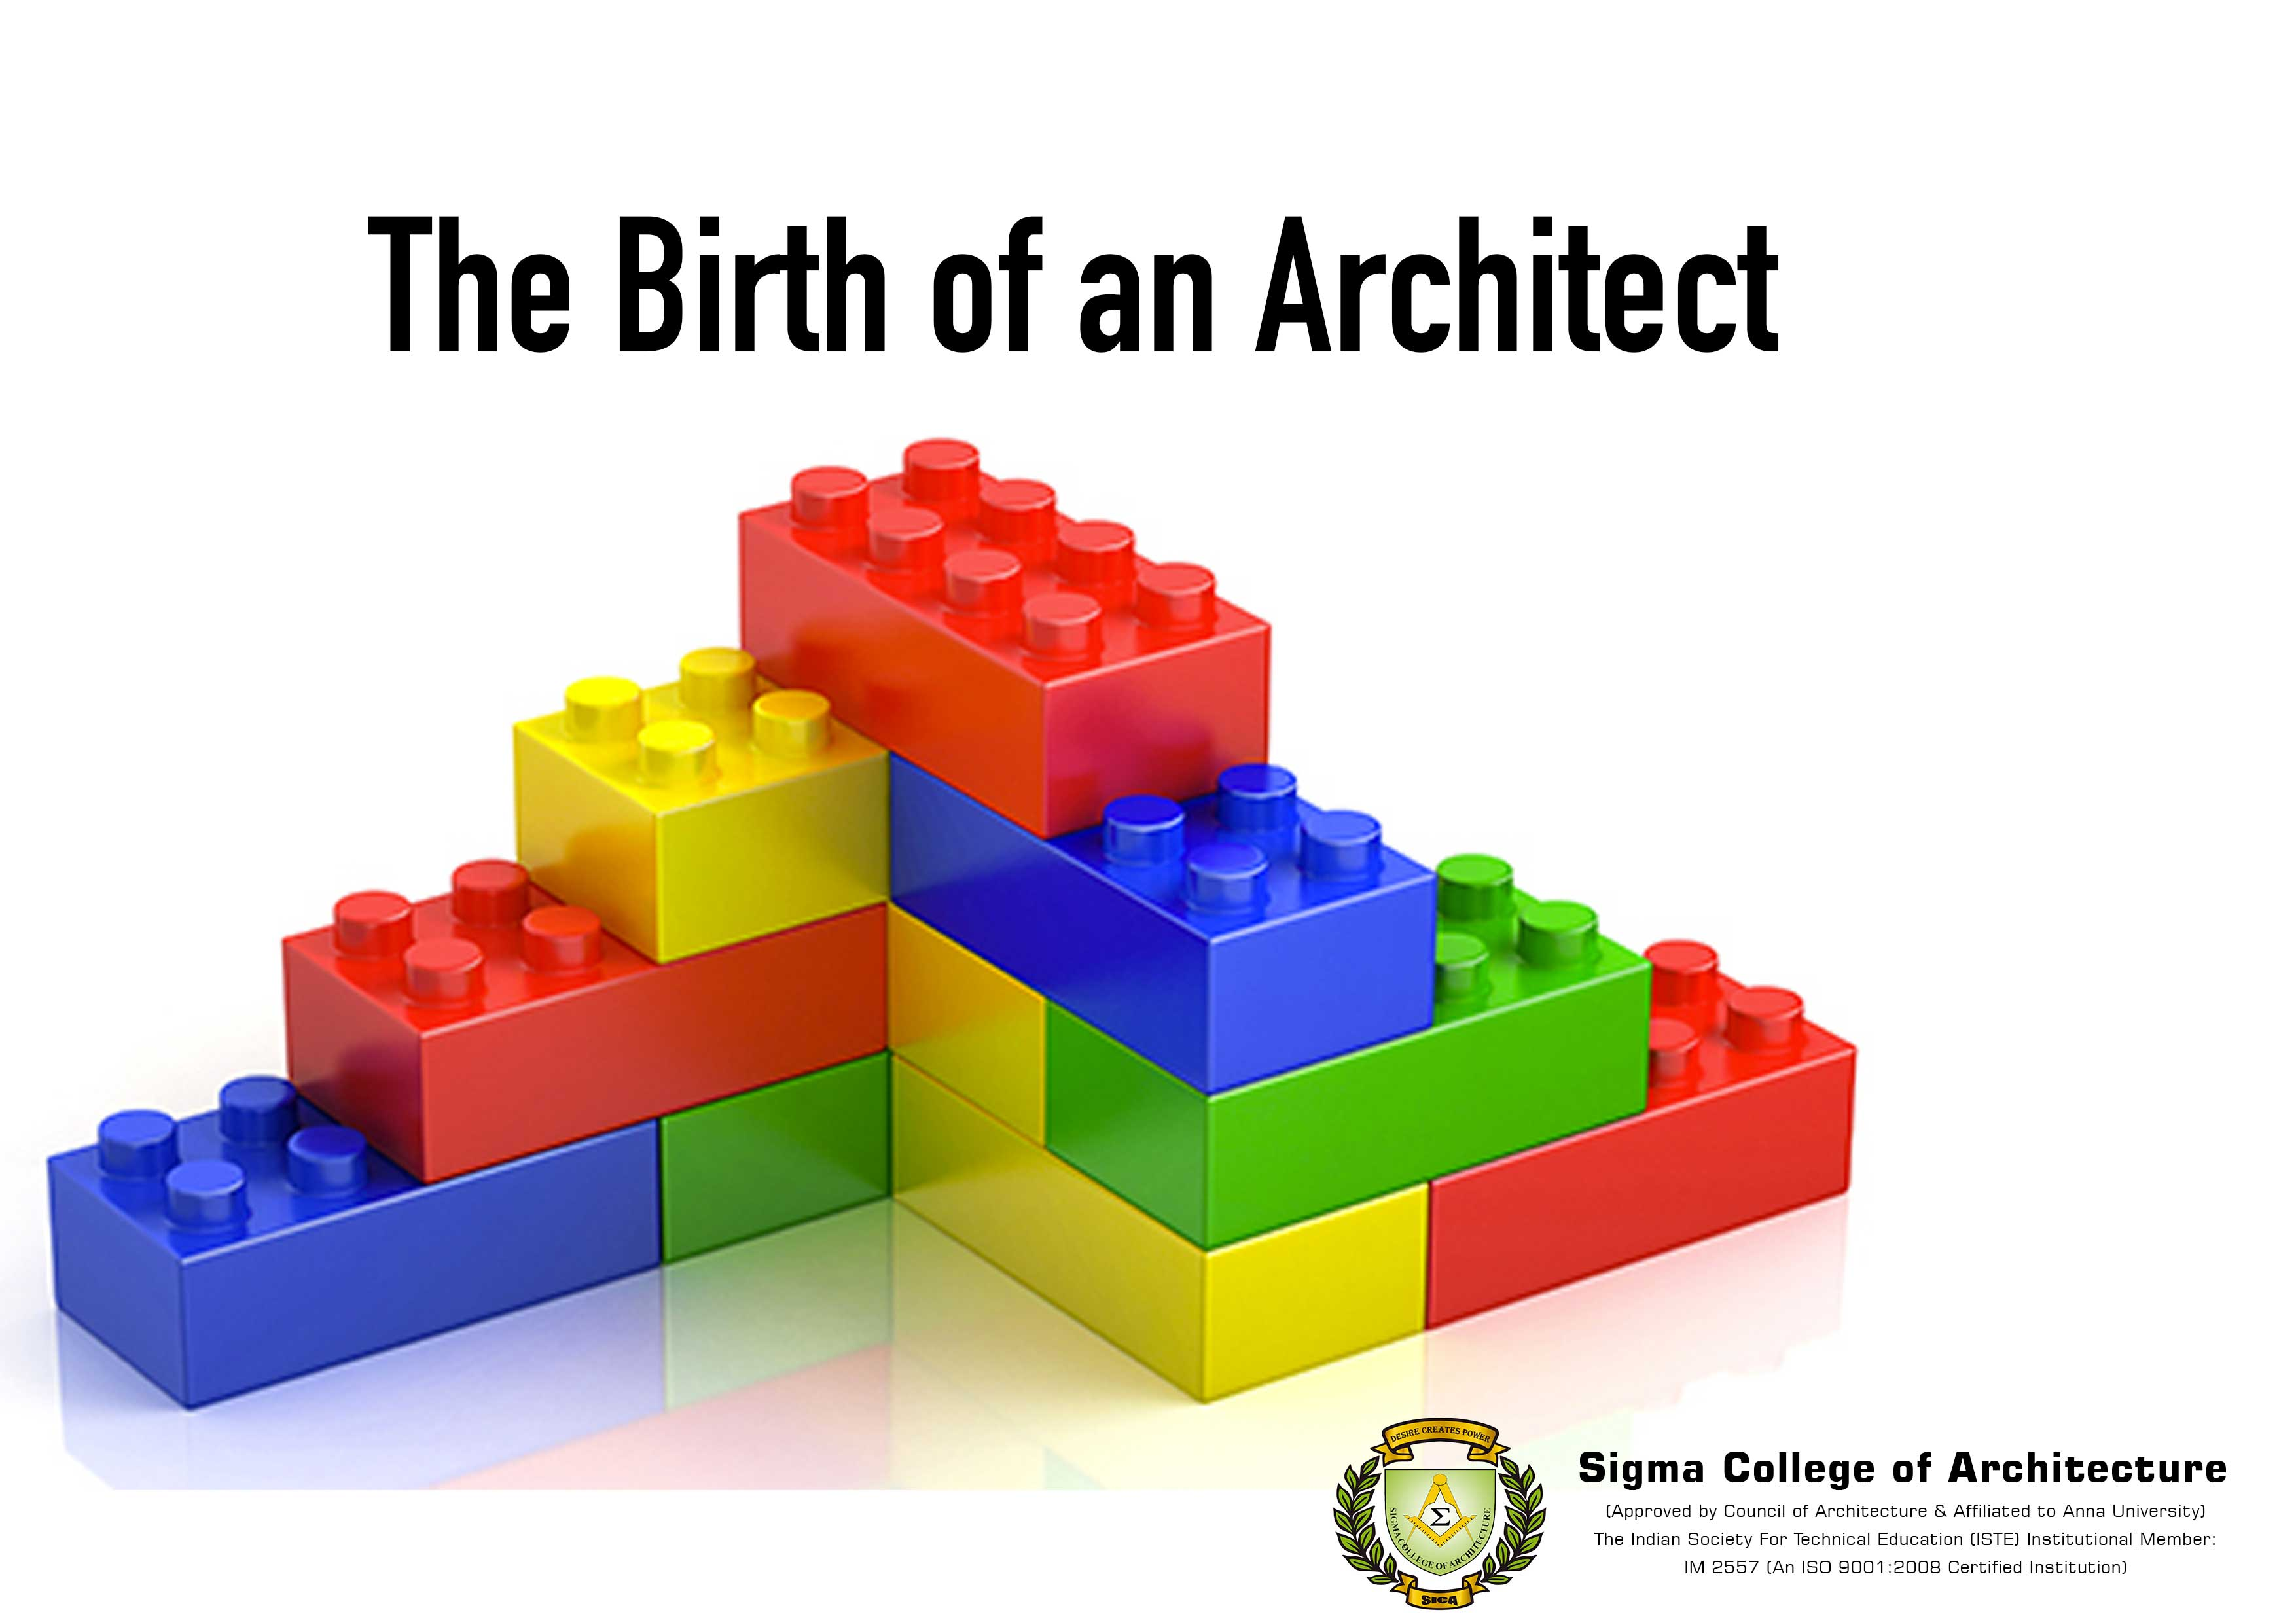 The Birth of an Architect